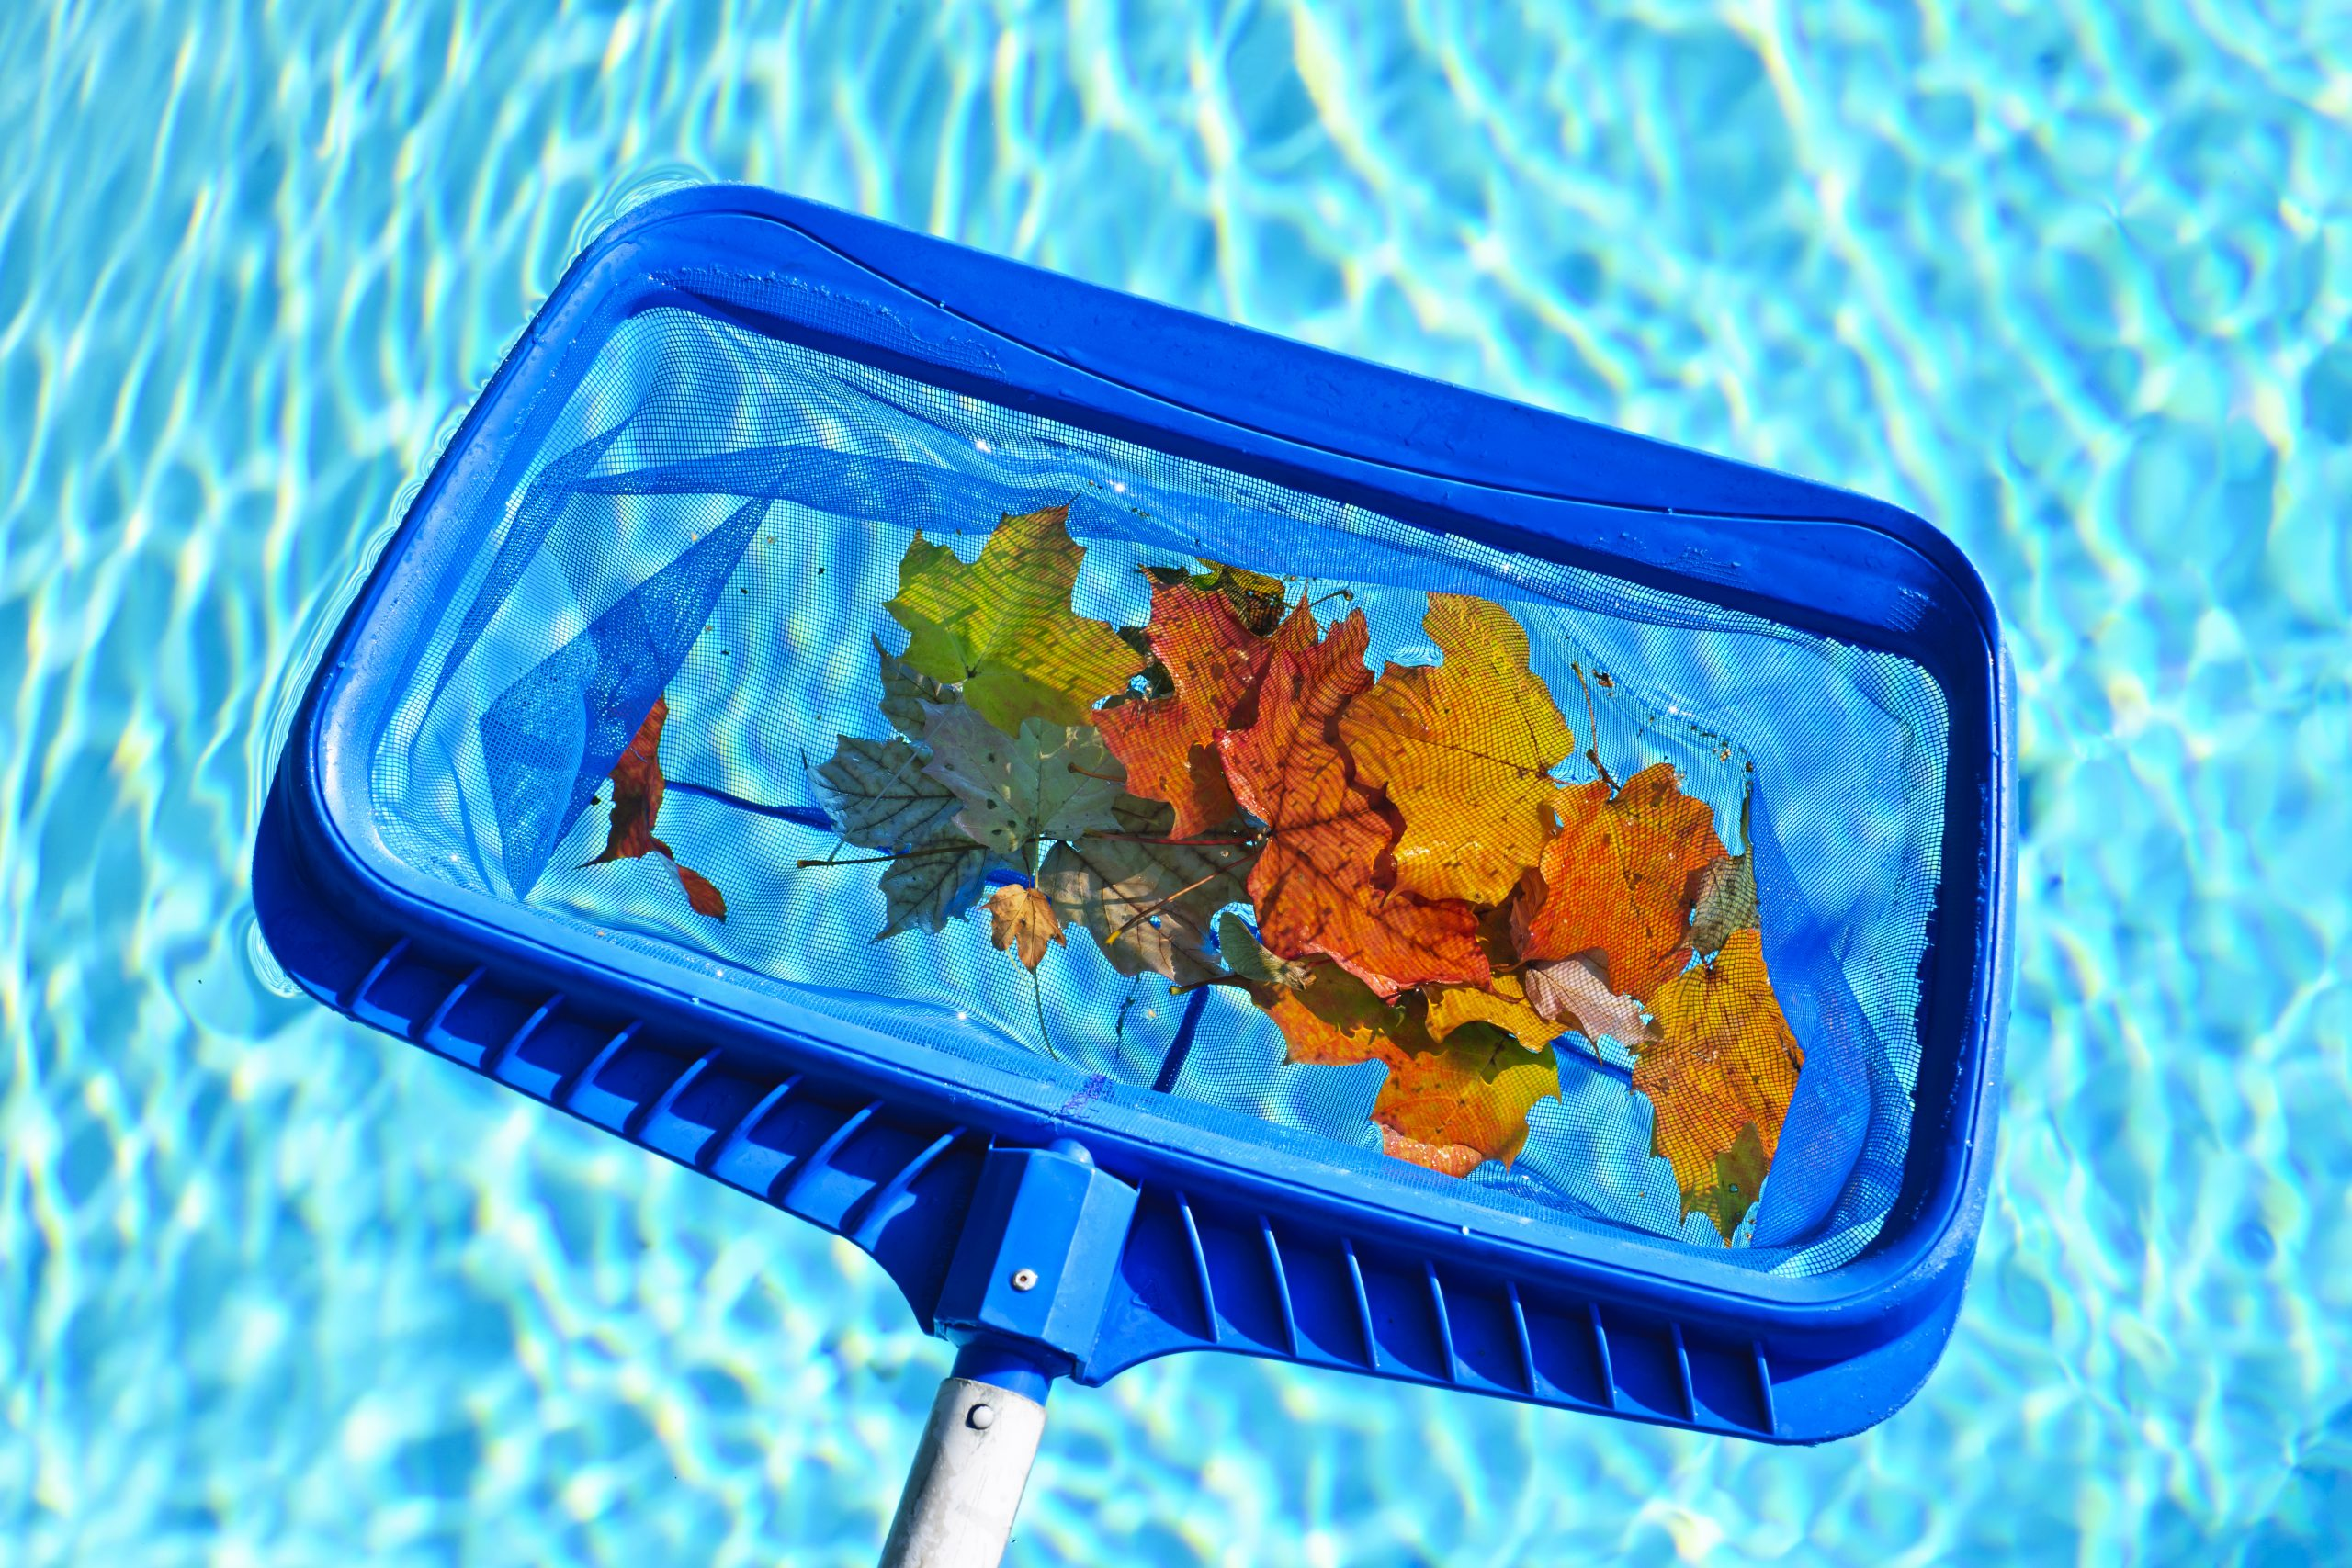 scooping autumn leaves out of pool